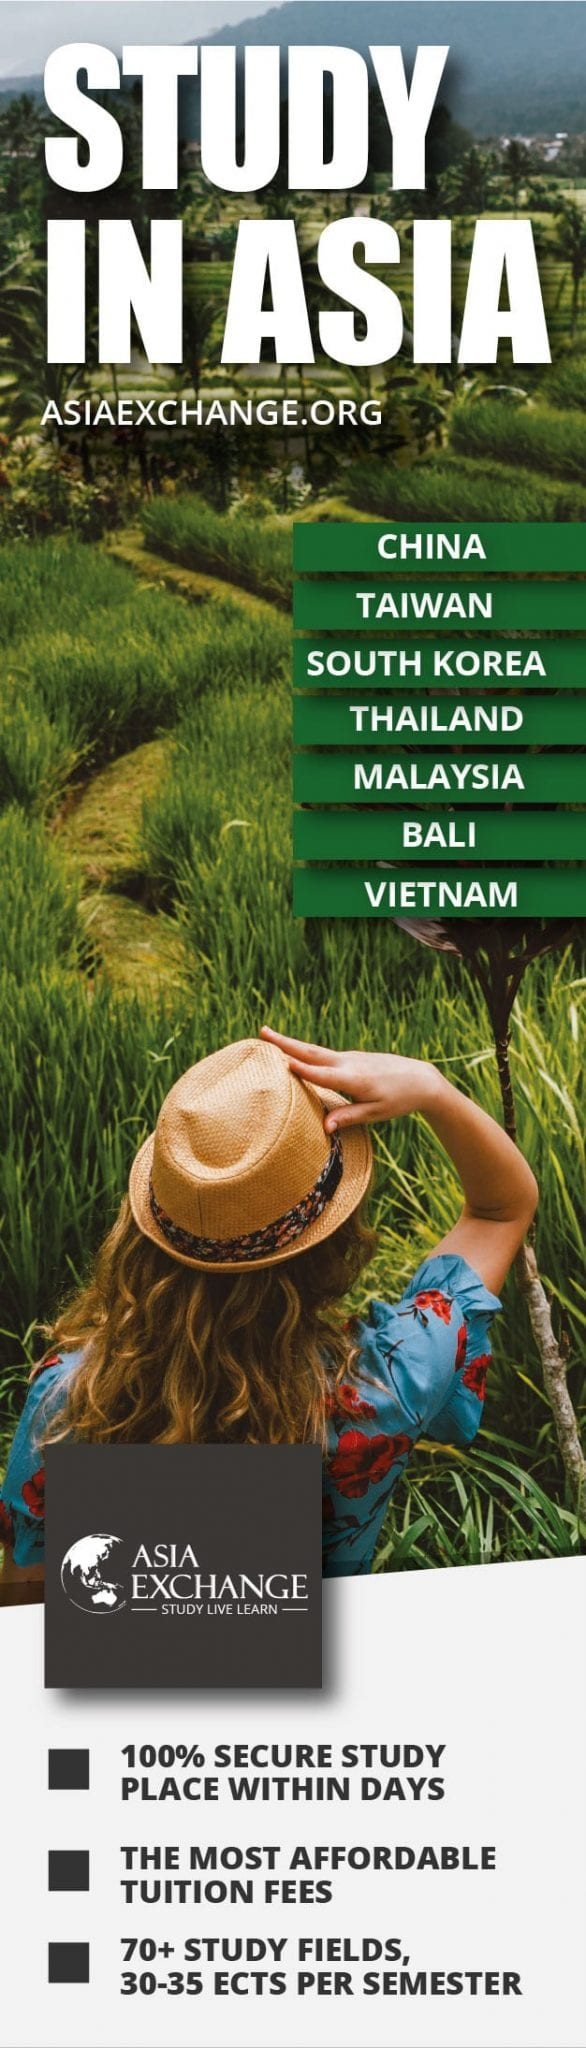 Asia Exchange Study in Asia Banner